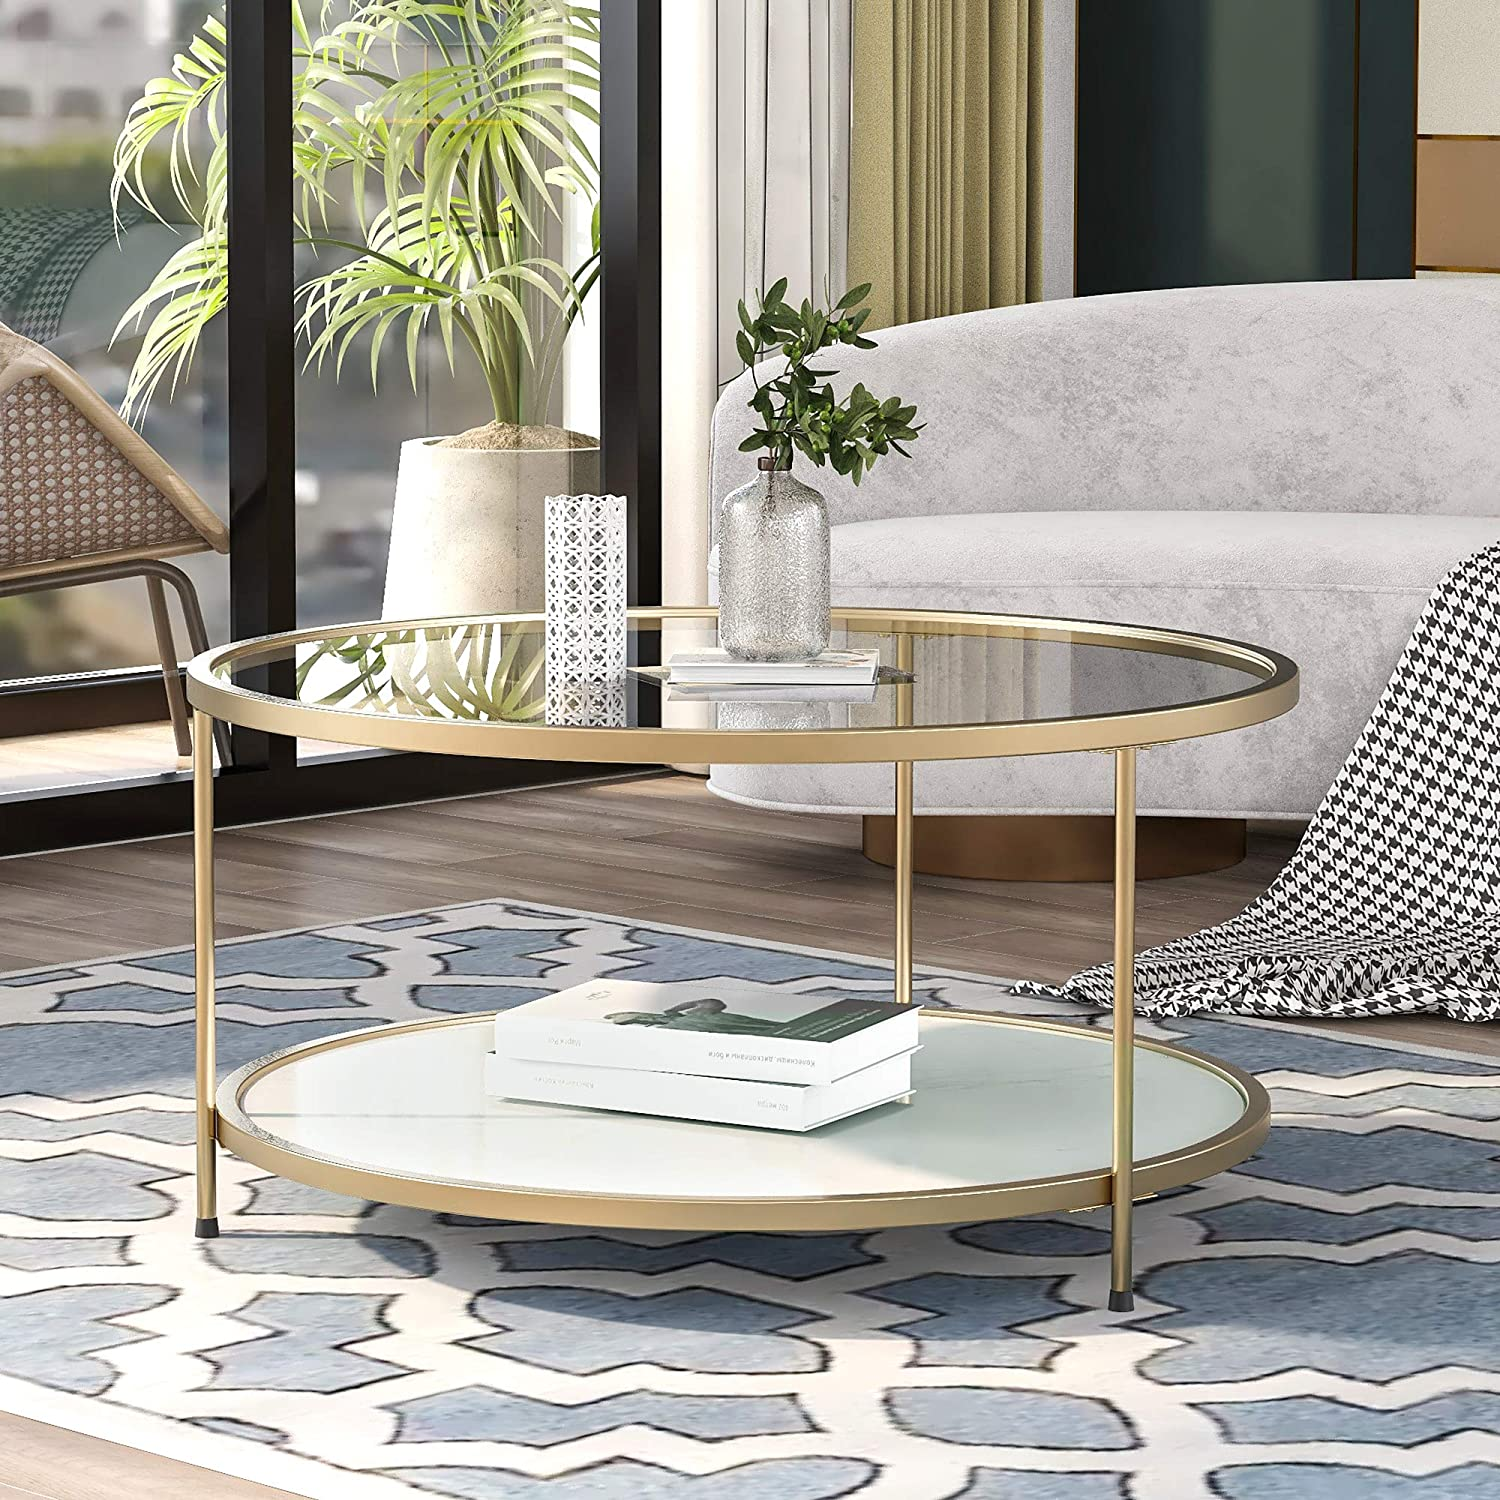 P PURLOVE 33.5 inch Round Coffee Table 2 Layer Glass Coffee Table with Storage Shelf,Coffee Table with Glass Tabletop and Metal Frame for Home Living Room Bedroom Lounge Office